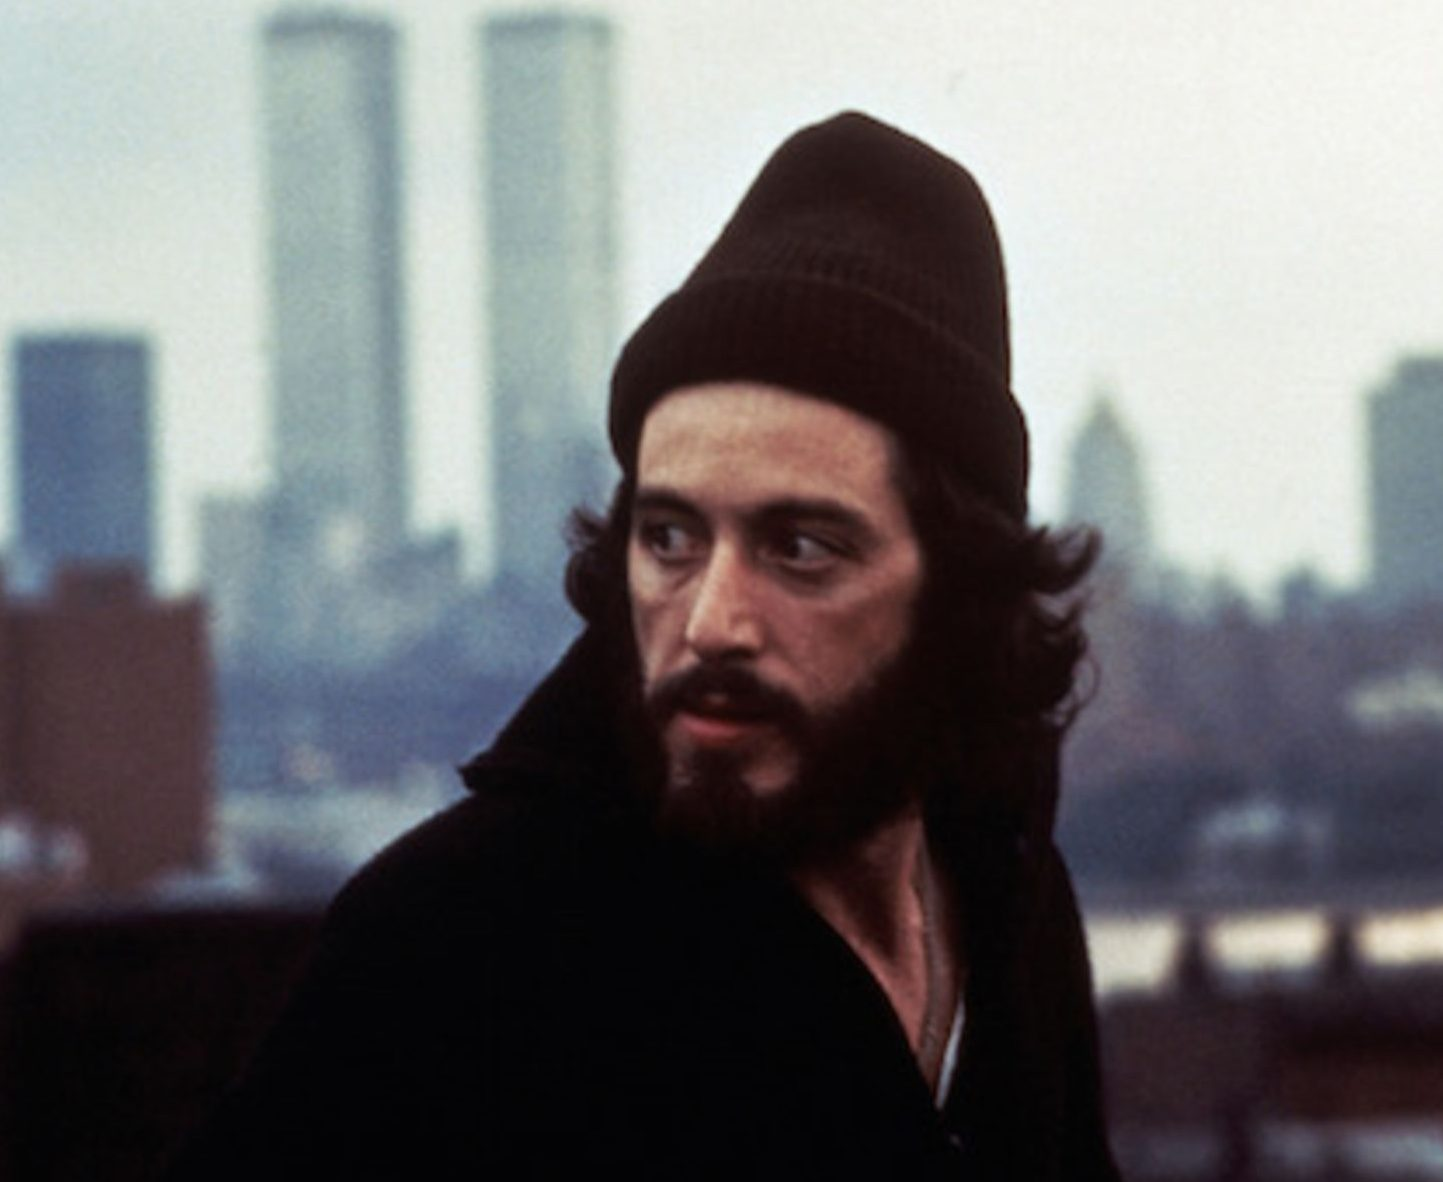 serpico hed e1606750485903 30 Things You Probably Didn't Know About Platoon